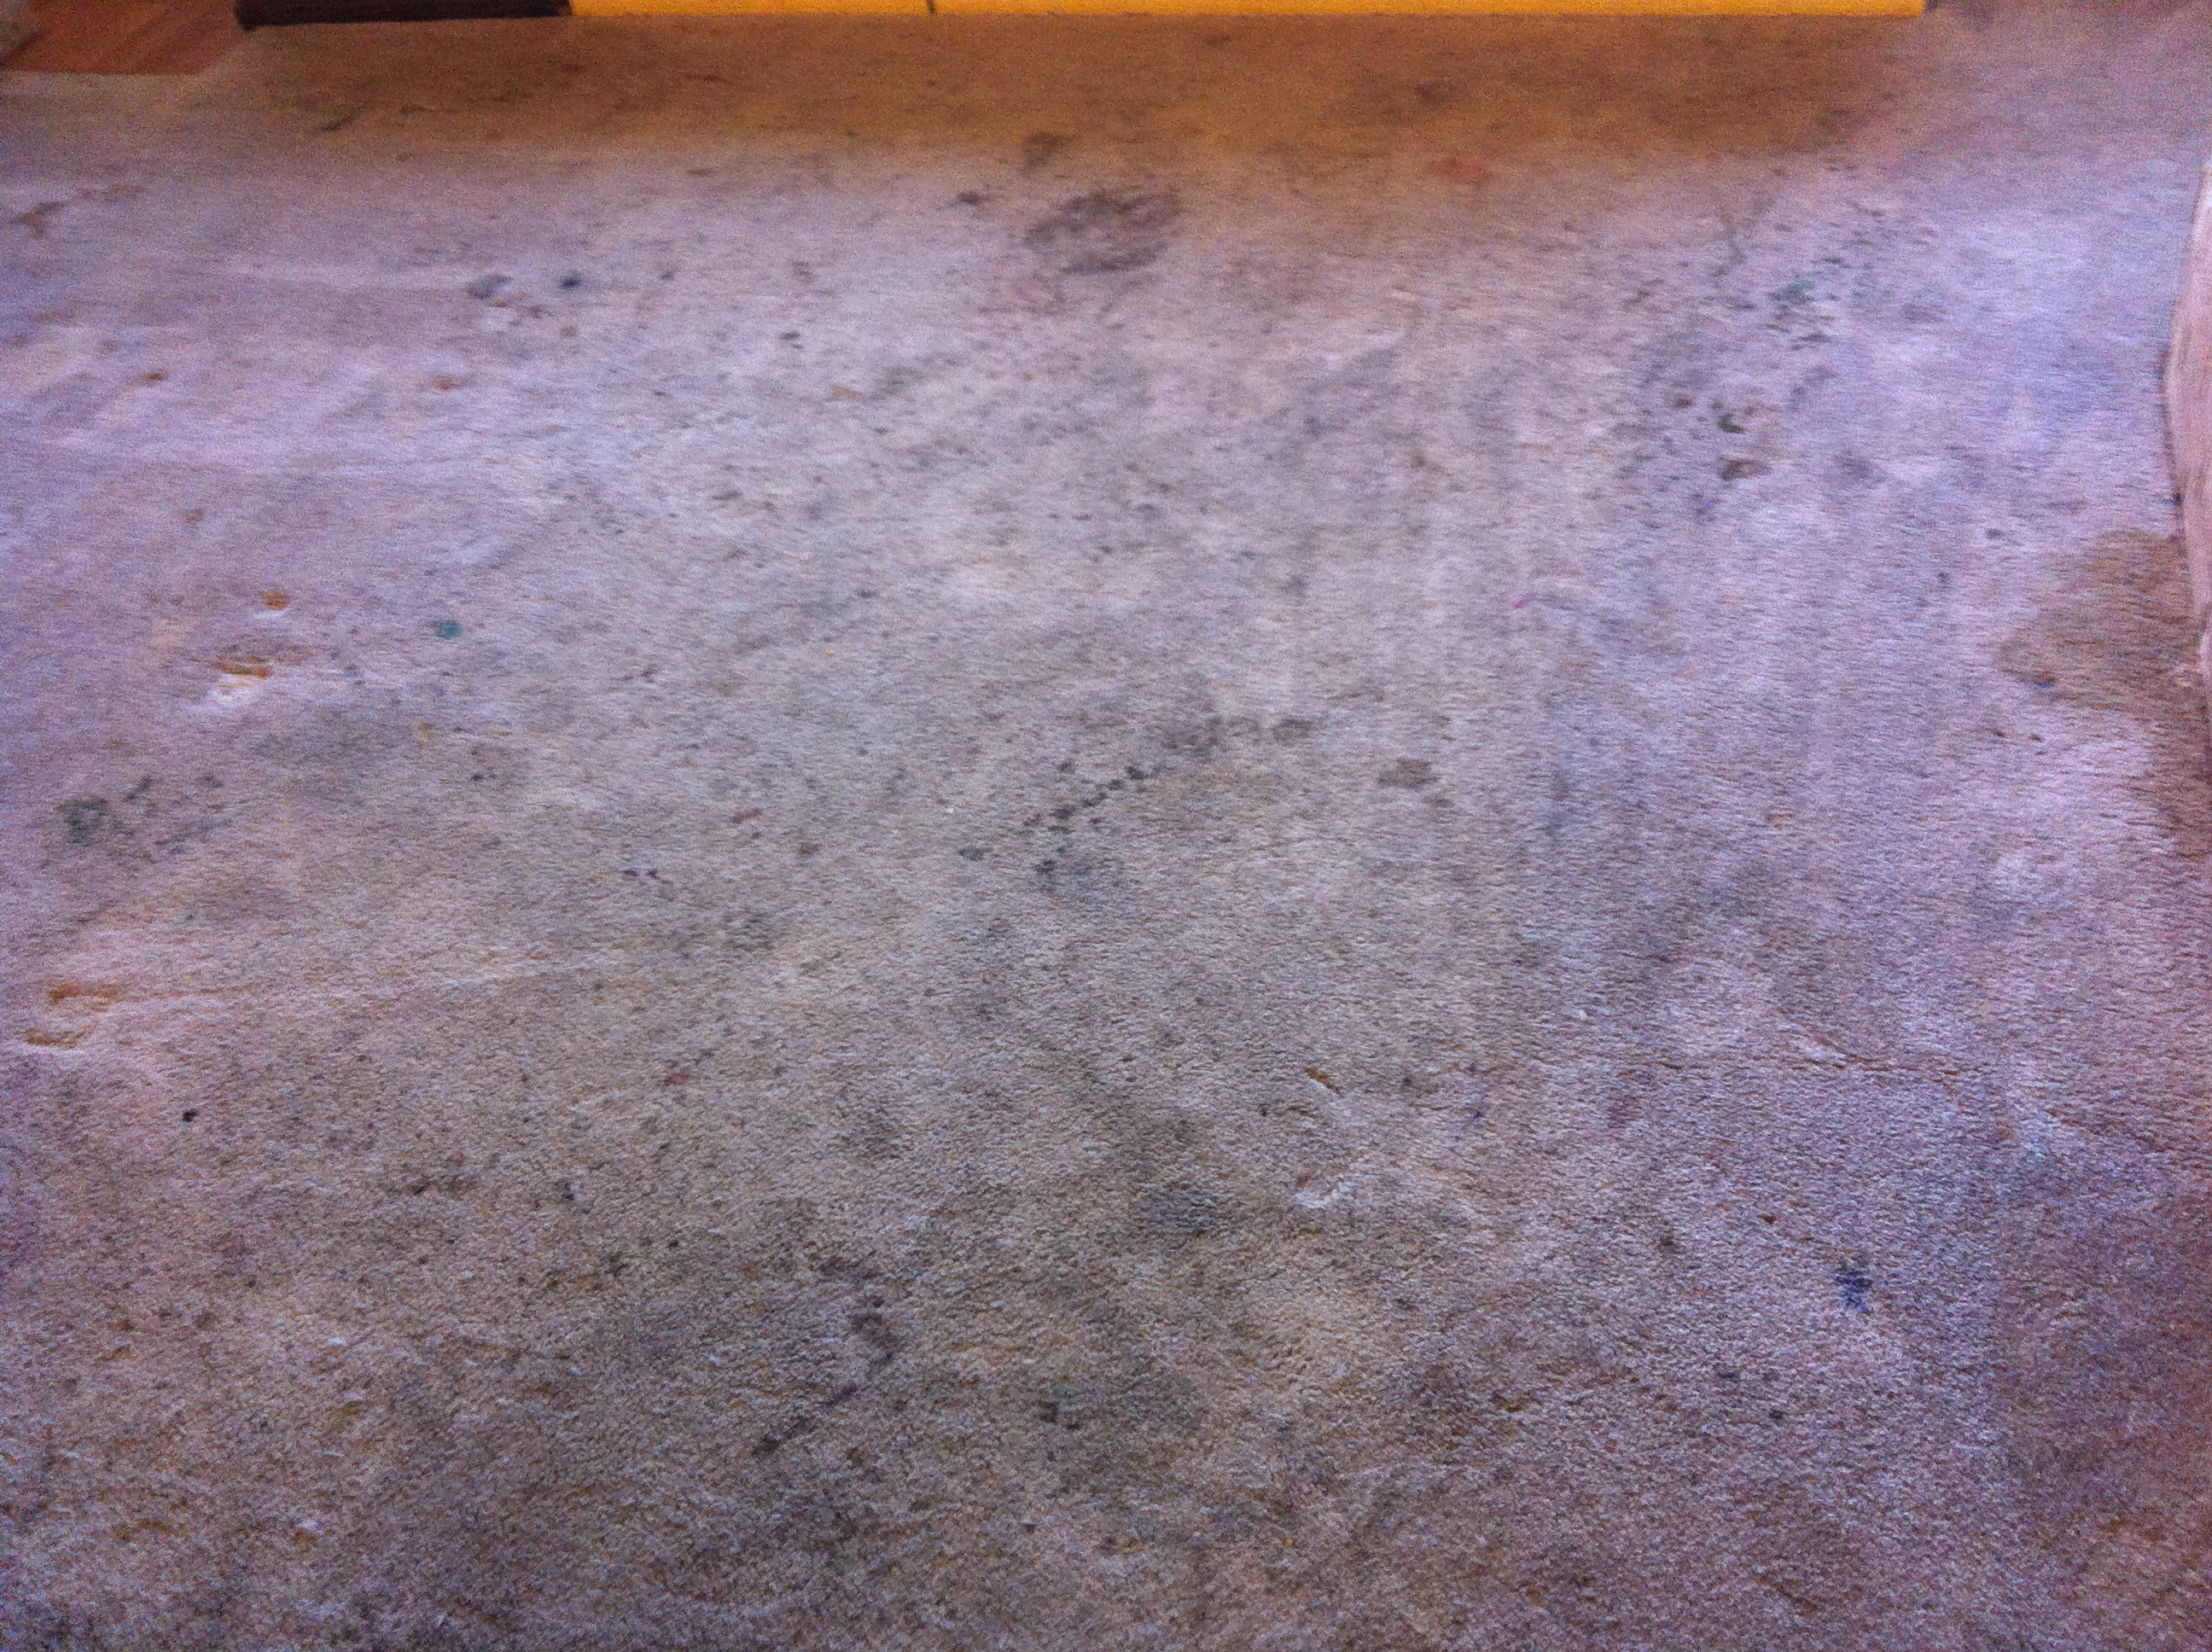 how to clean dirt stains on polyester